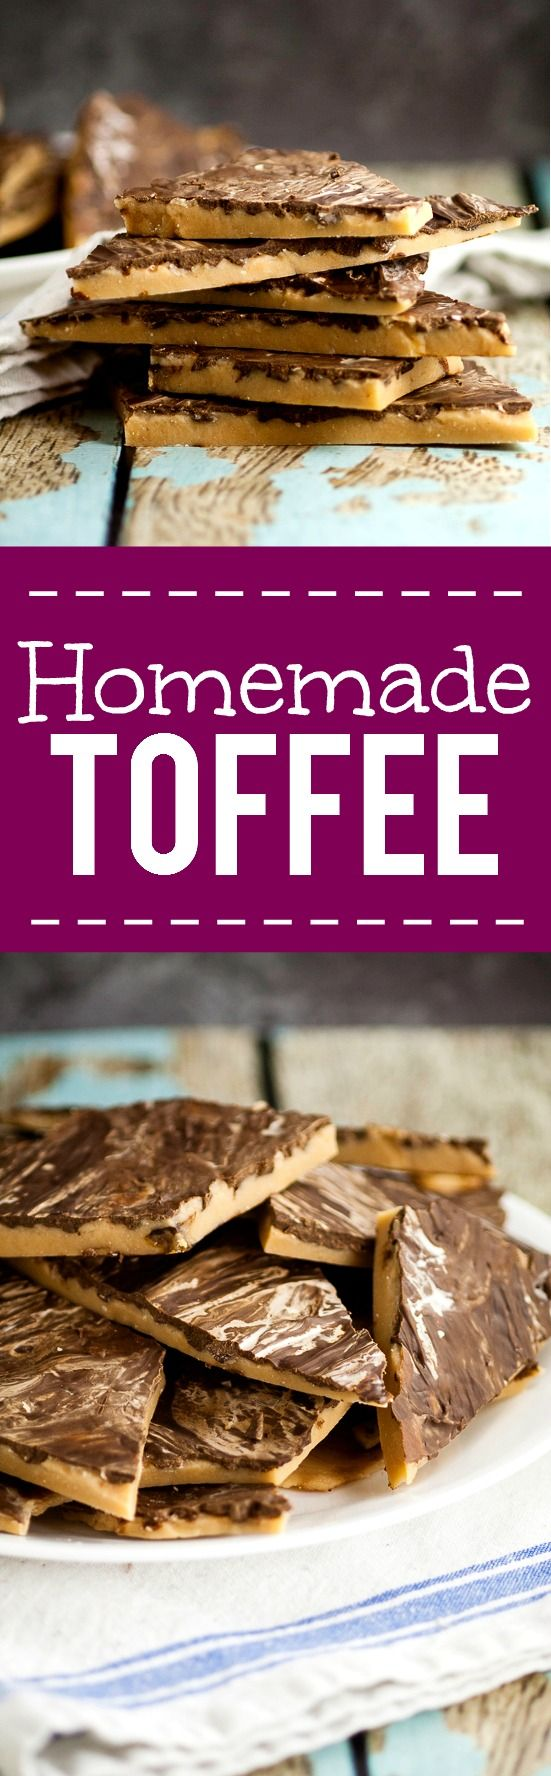 Homemade Toffee Recipe - Who knew making homemade chocolate toffee could be…